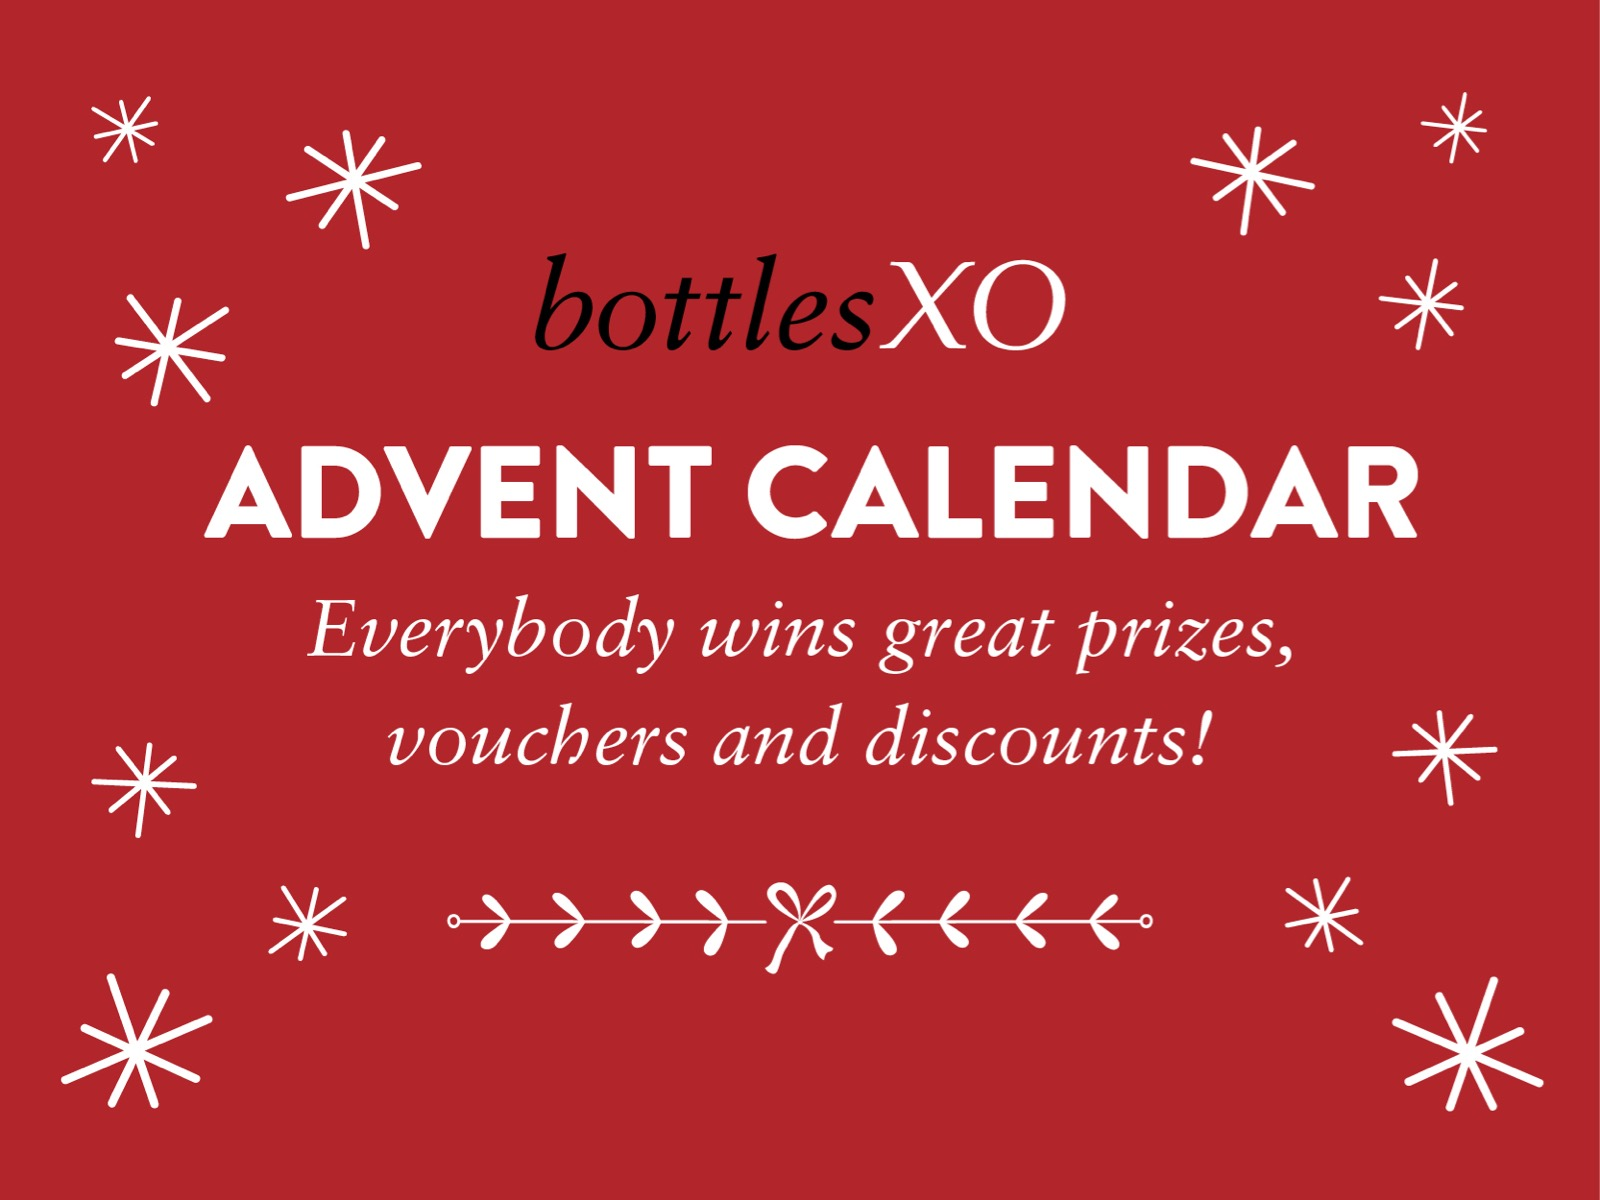 Shanghai | BottlesXO Advent Calendar – Prizes, Vouchers & Discounts!